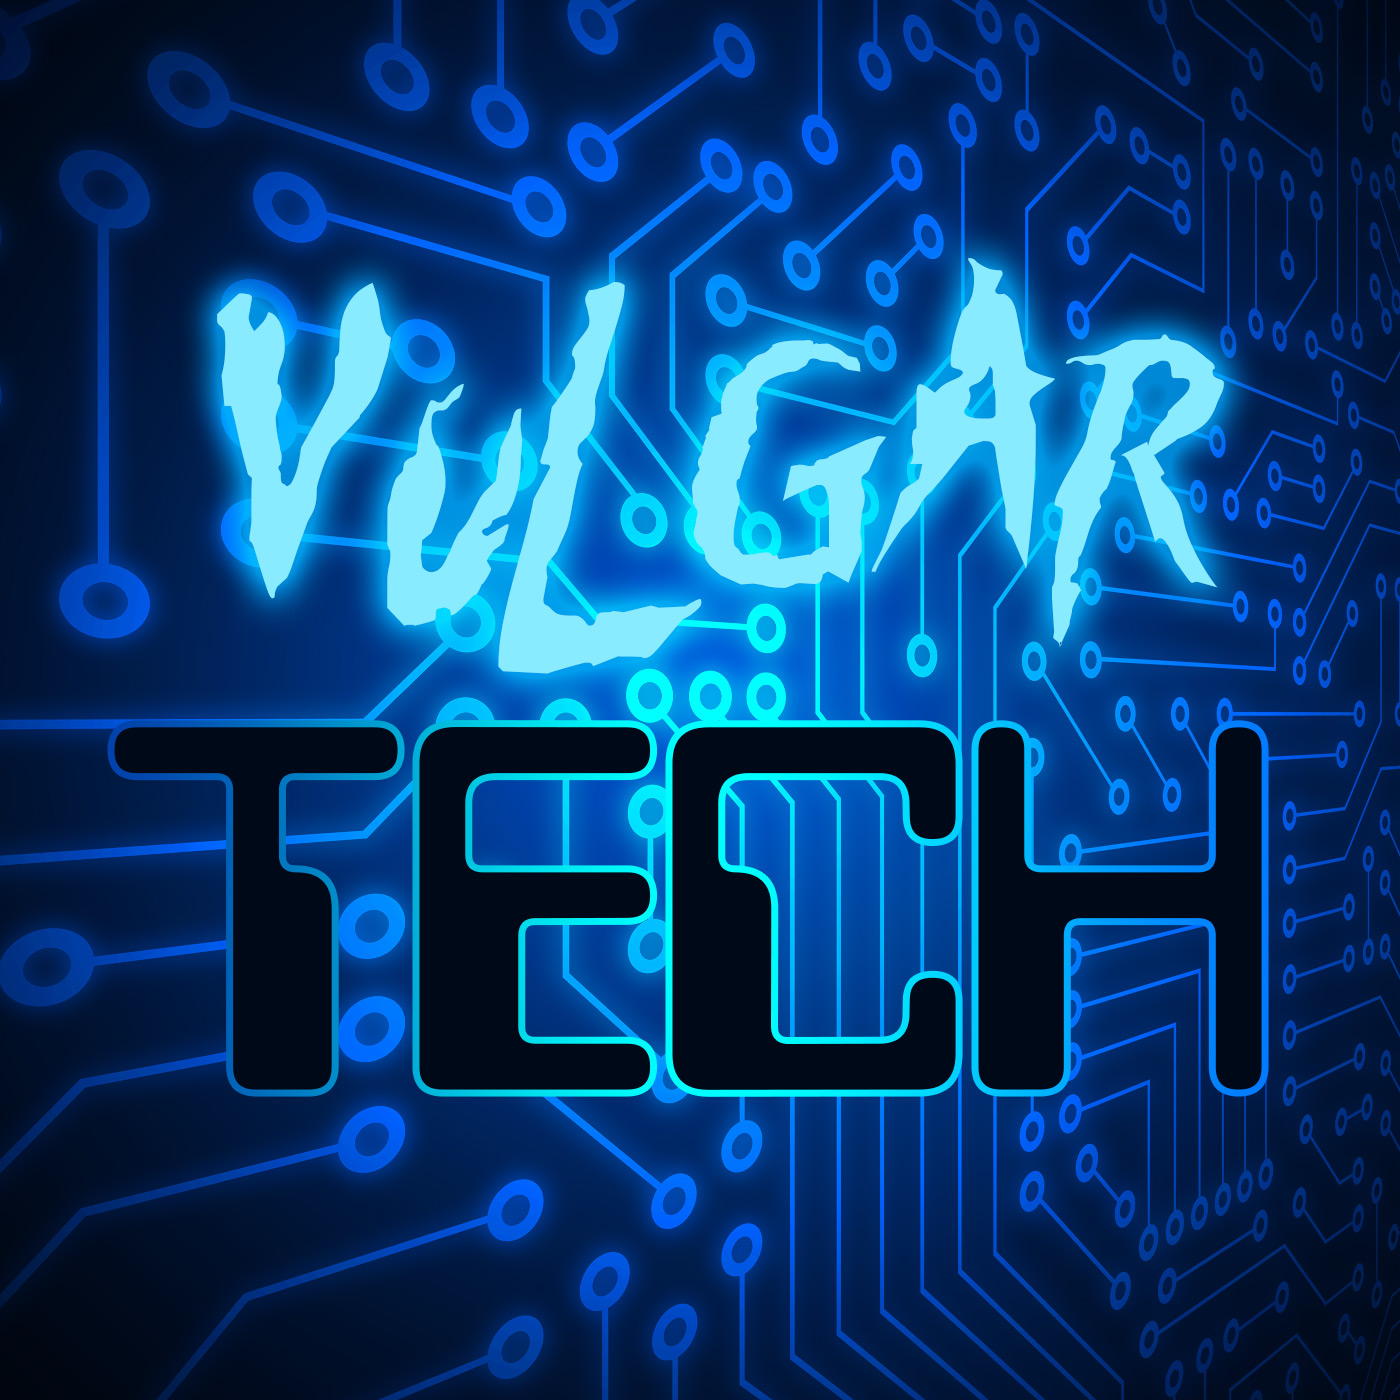 Vulgar Tech 013 : Predictions, Flying Cars, Human Head Transplants, Trolls, Dating Apps and More!